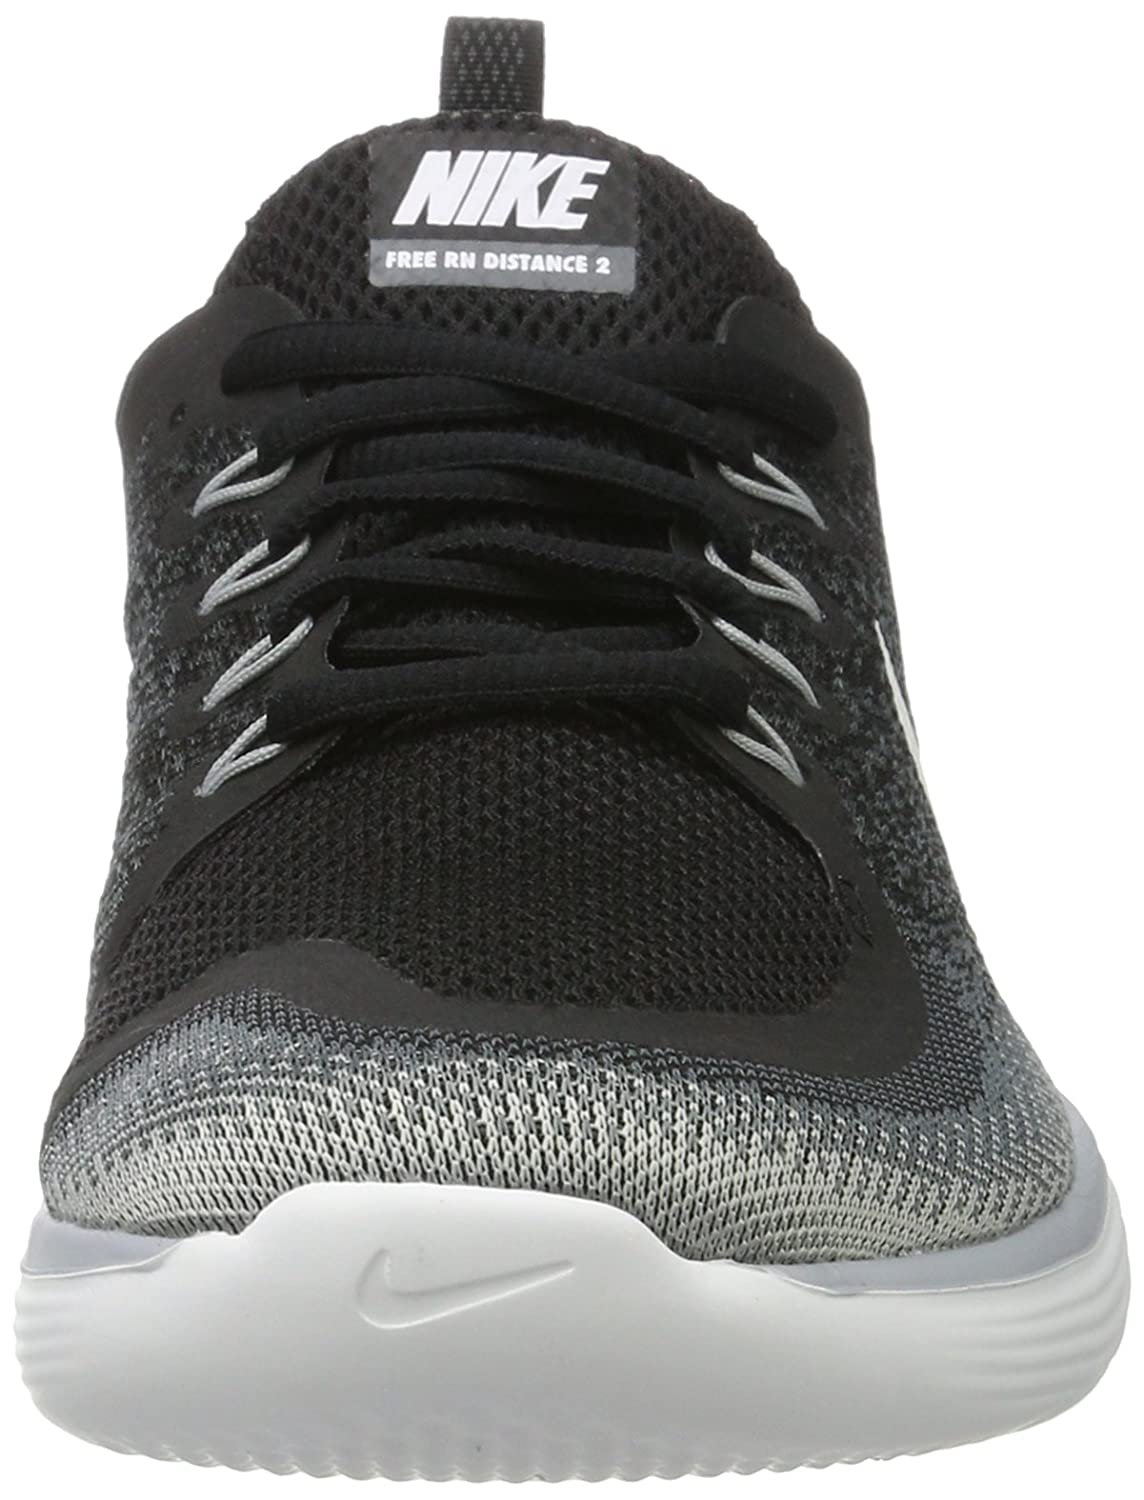 Nike Women's Running Free Rn Distance 2 Running Women's Shoe B01MU86ZCU 8 B(M) US|Black/White Cool Grey 80fca8